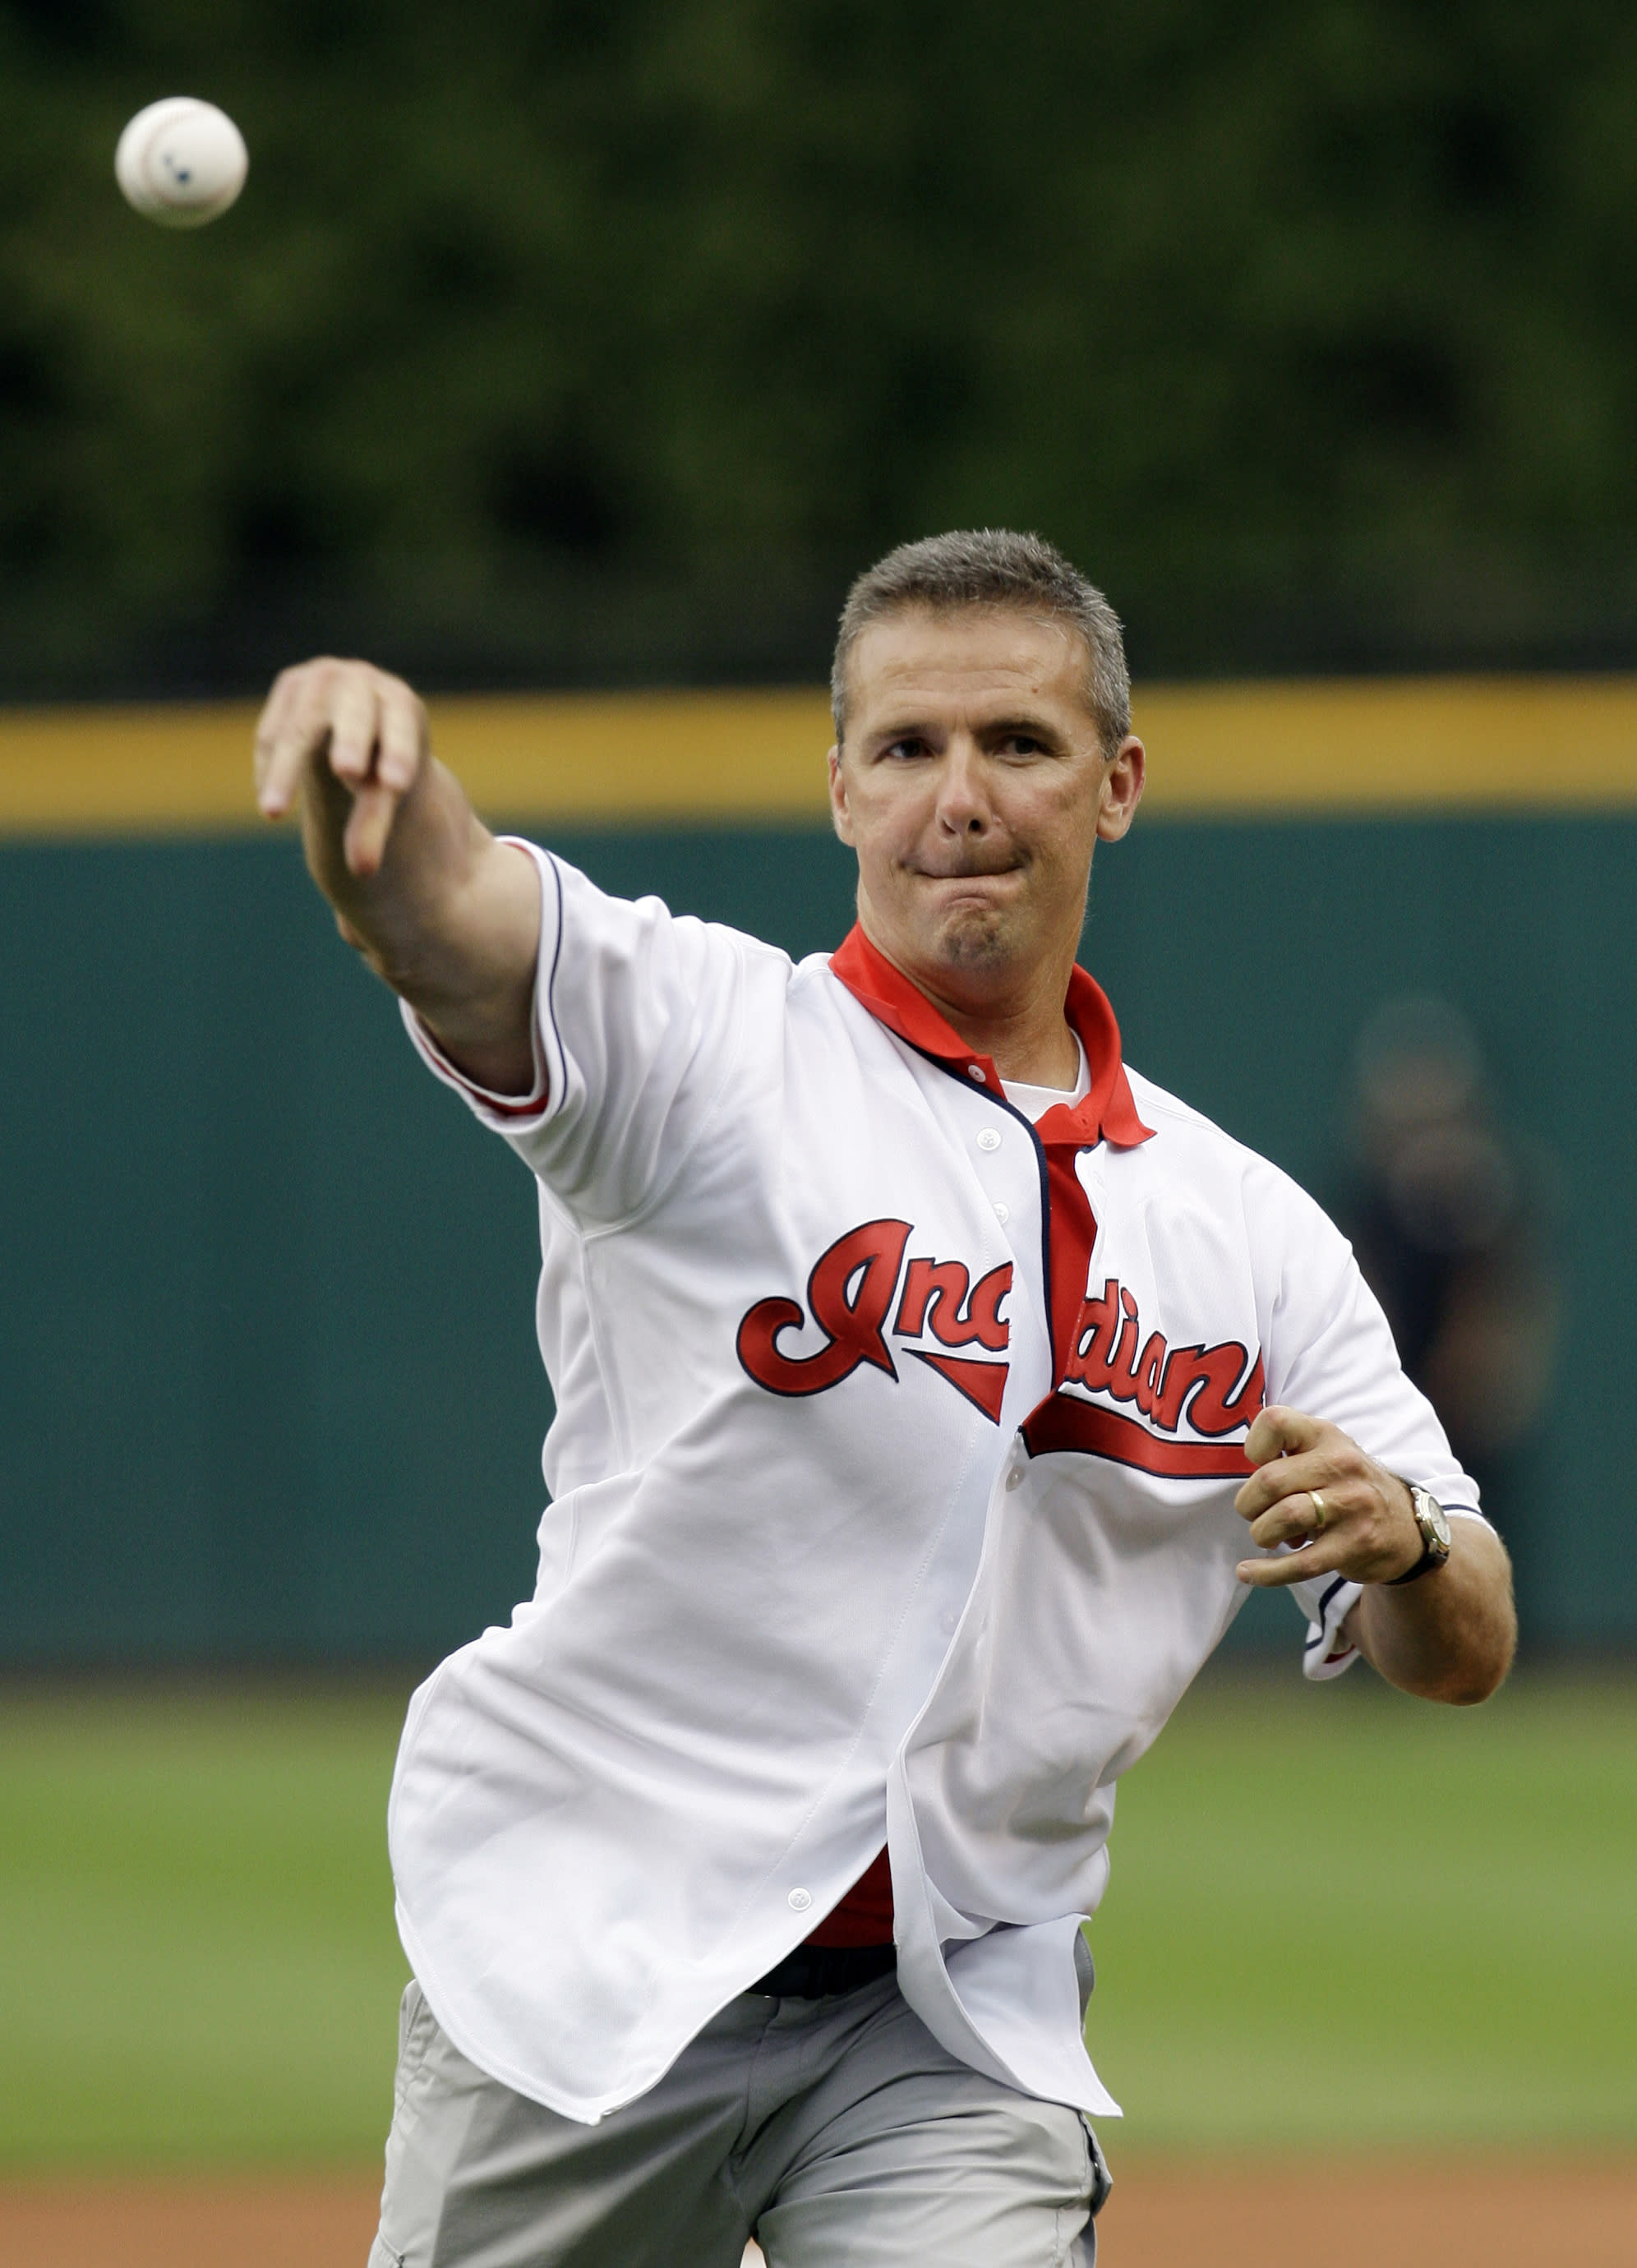 Ohio State football coach Urban Meyer throws out the ceremonial first pitch before the Cleveland Indians play the Cincinnati Reds in a baseball game, Monday, June 18, 2012, in Cleveland. (AP Photo/Tony Dejak)